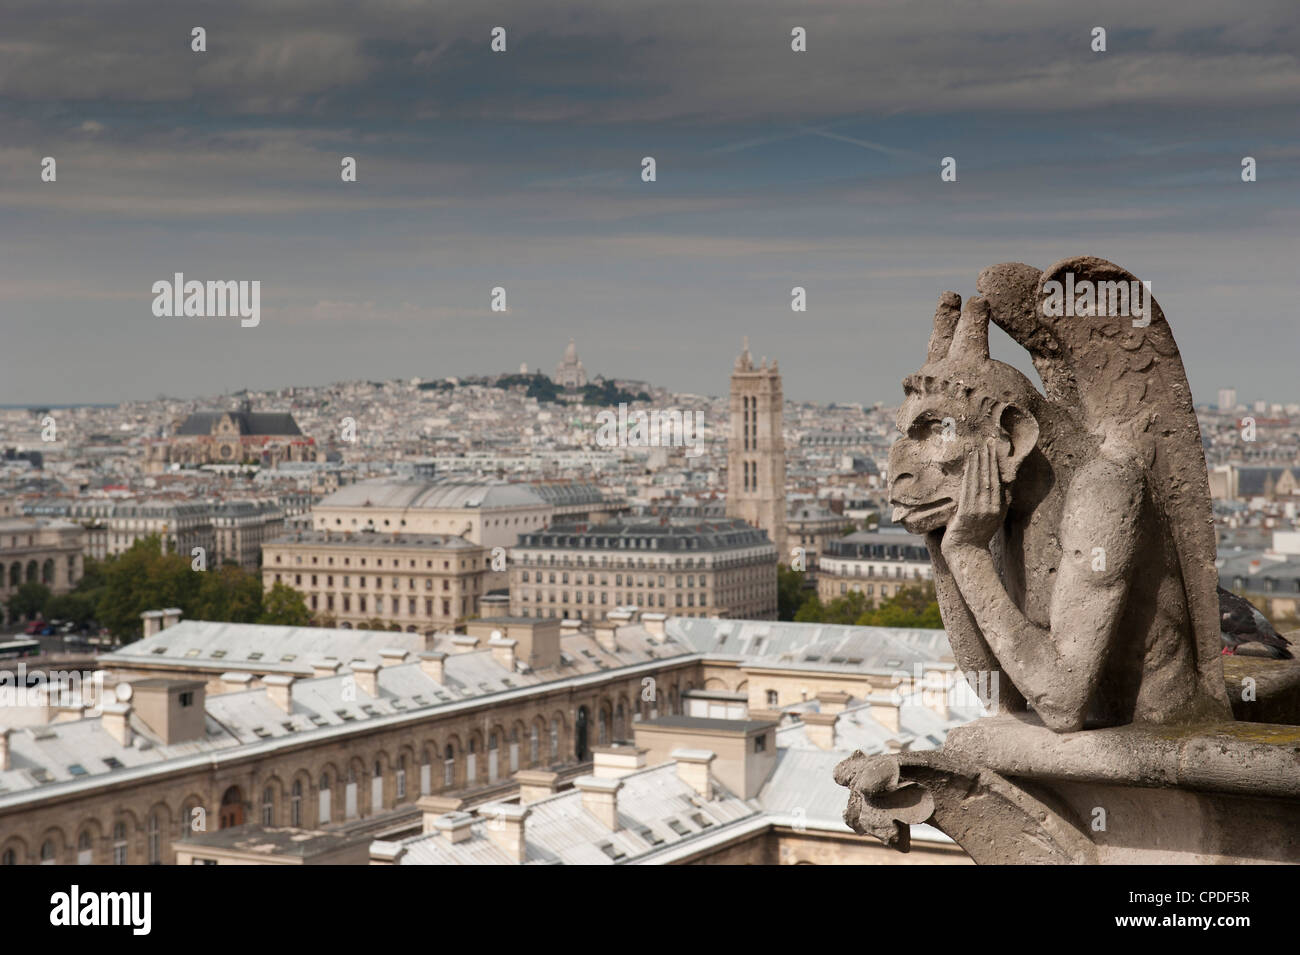 Gargoyle of Gothic Notre Dame Cathedral and the Right Bank with Basilica of Sacre Coeur, Paris, France, Europe - Stock Image